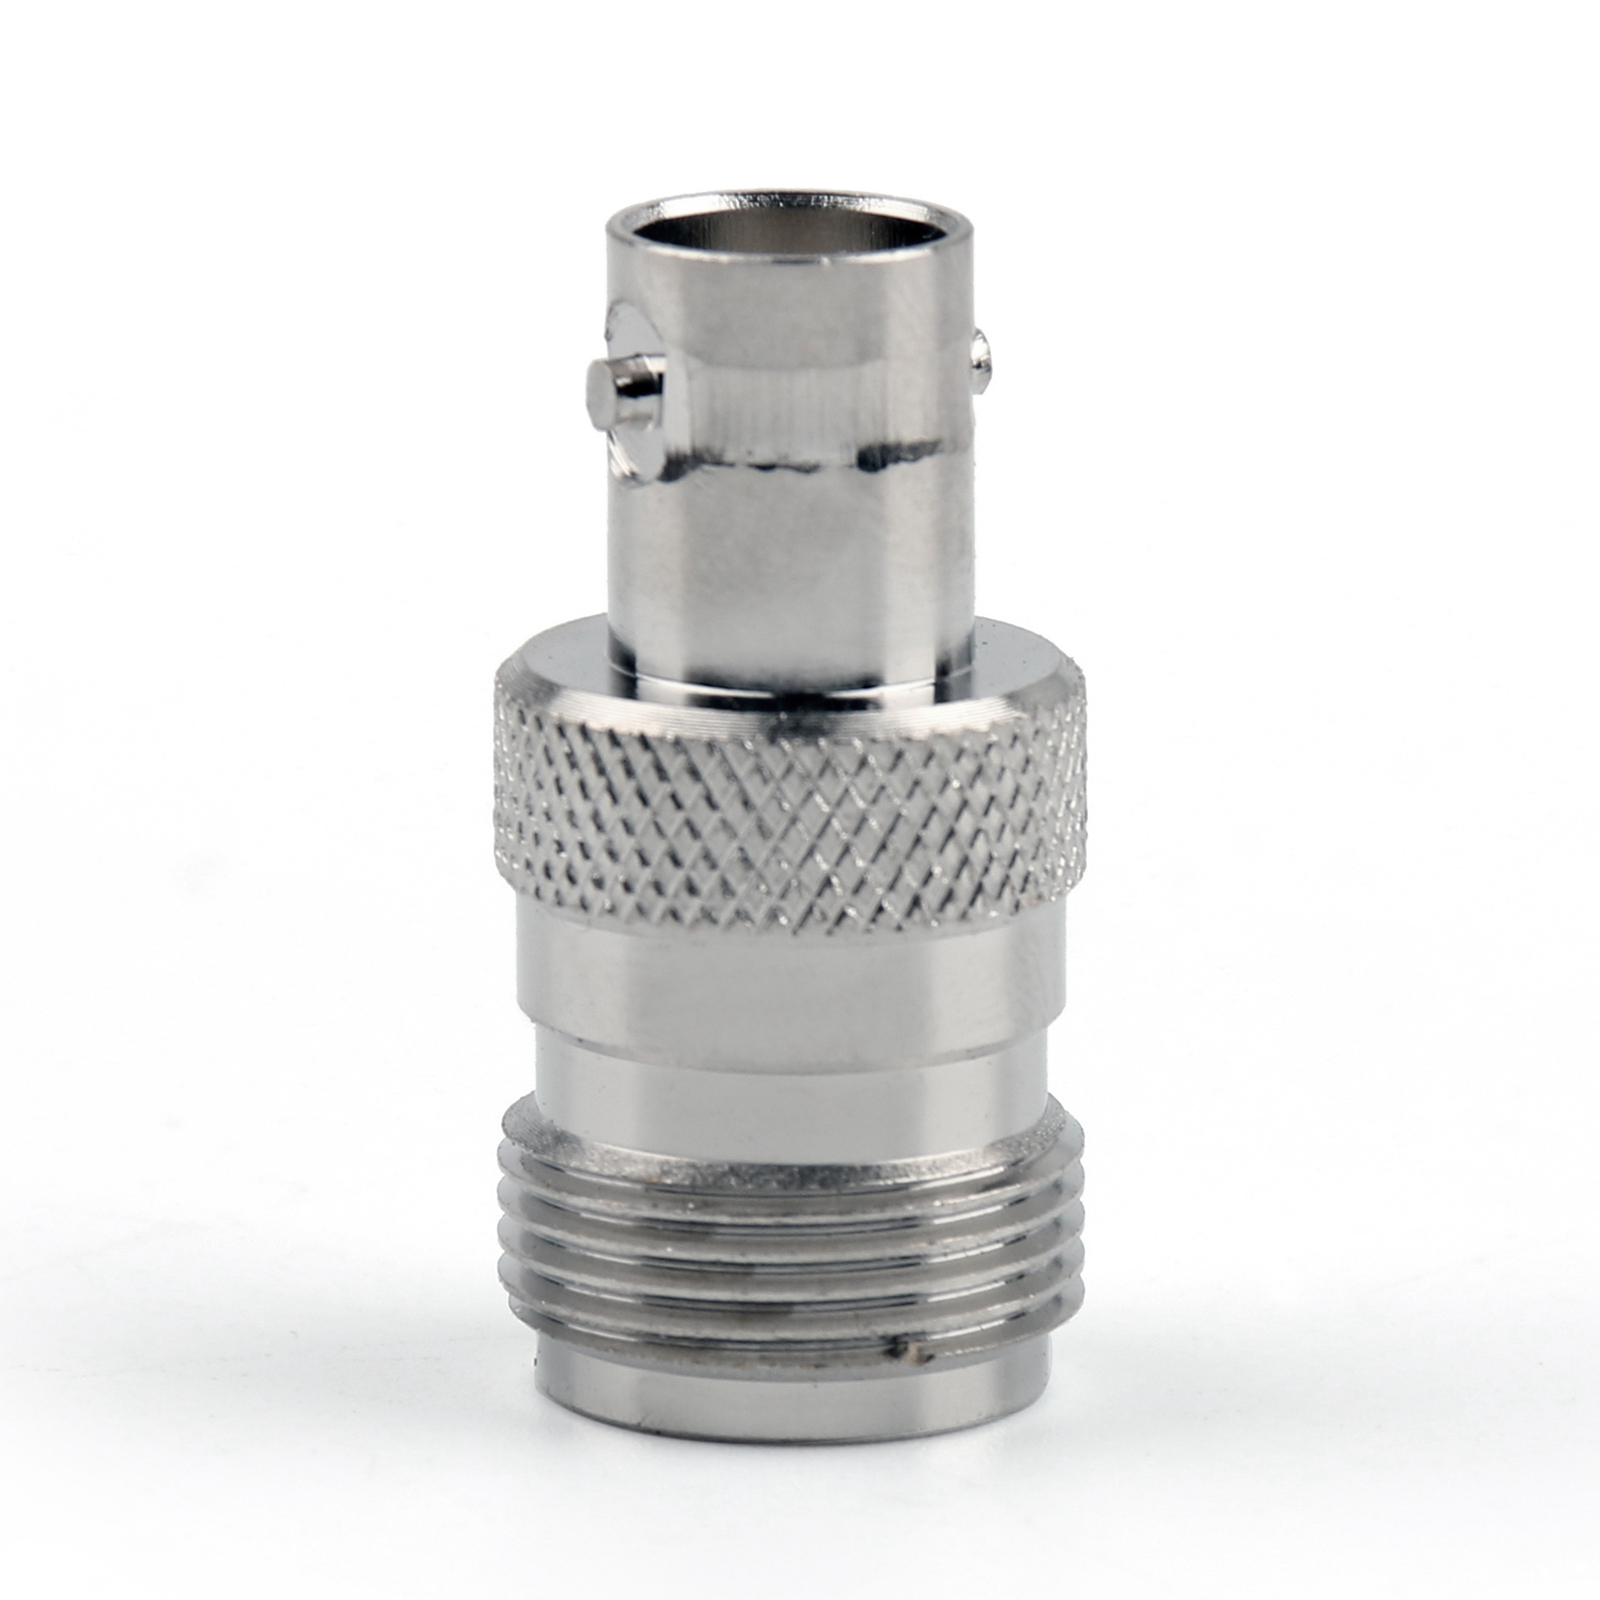 Connector A: N female, Nickel plating. Connector B: BNC female, Nickel plating. Color:Same as the picture show